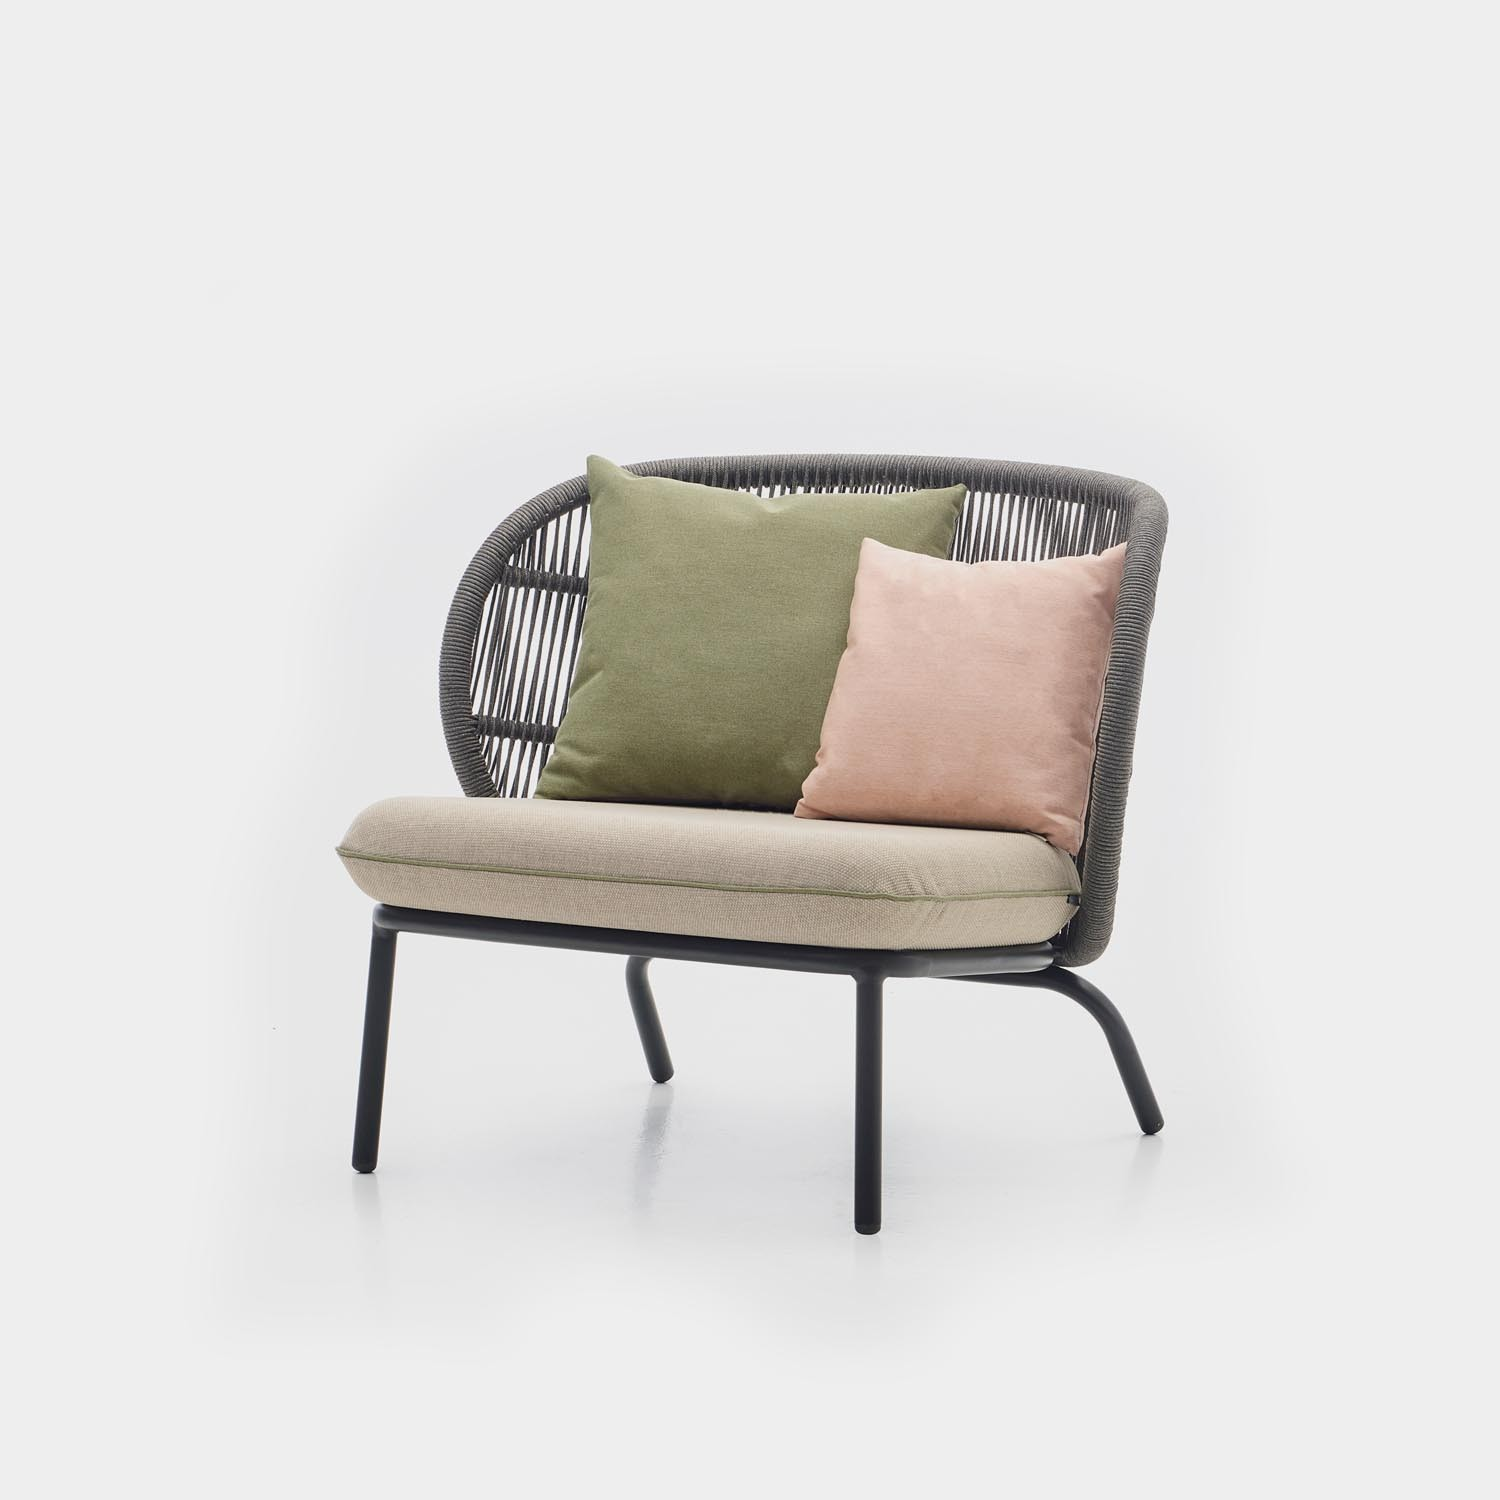 Kodo Lounge Chair with Deco Cushions